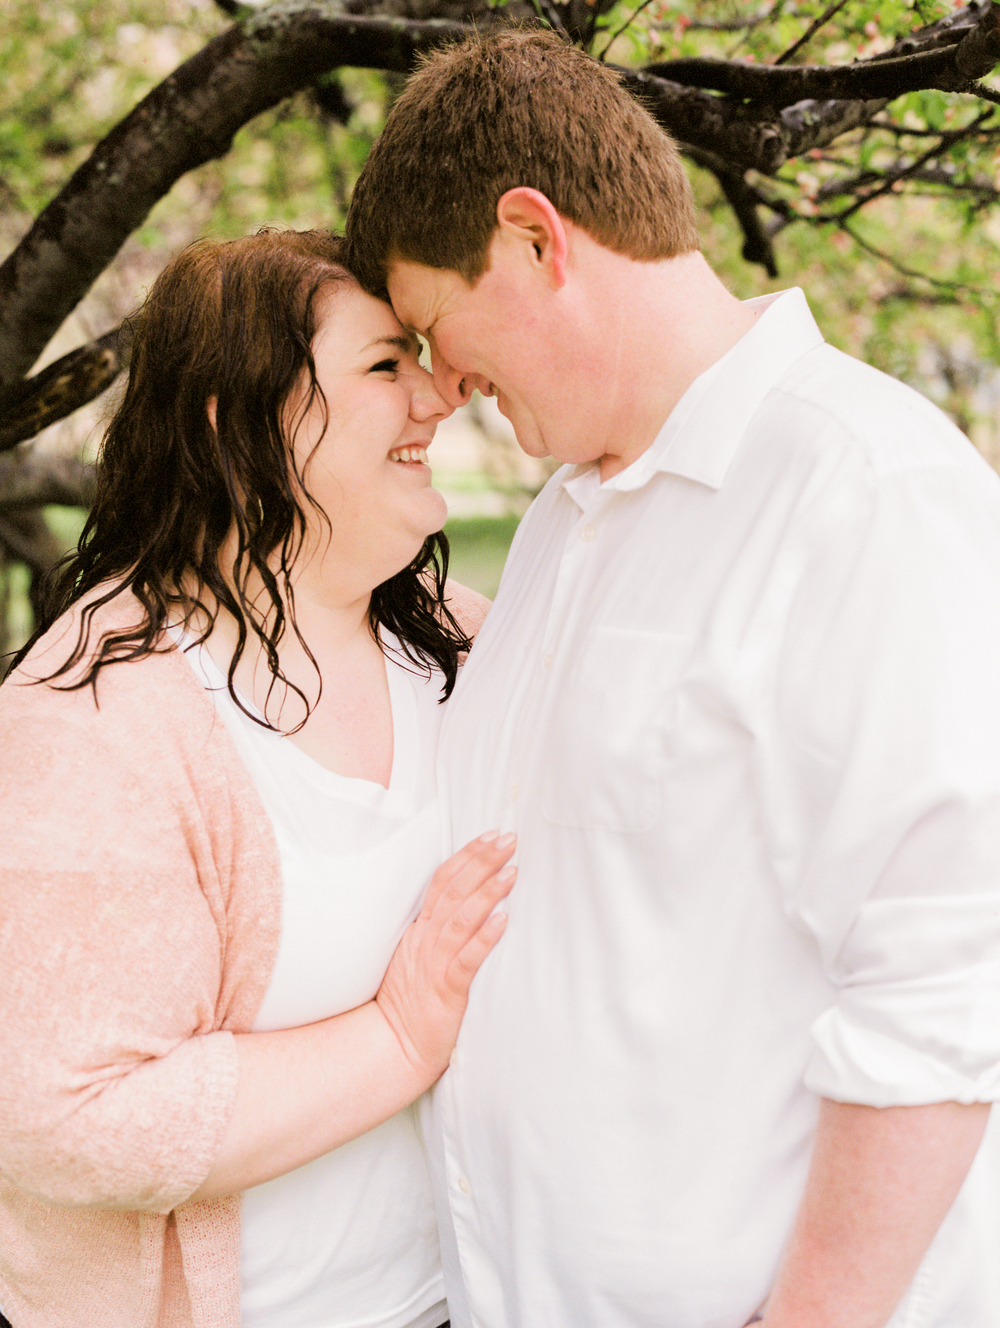 Trent + Beth_Engagement_Catie Scott Studio LLC61.jpg